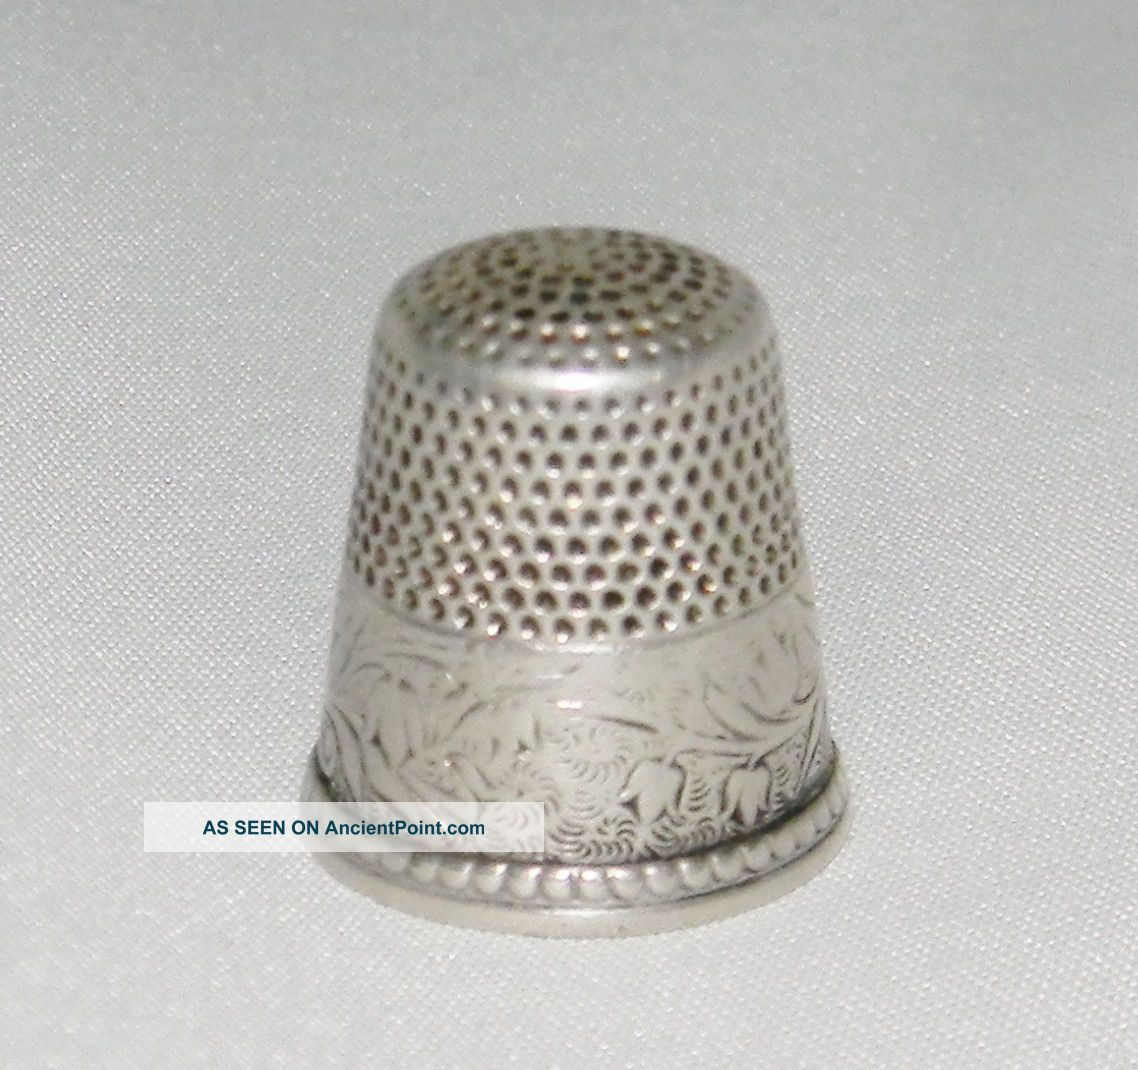 Antique Sterling Silver Ketcham & Mcdougall Lily Of The Valley Thimble C1900s Thimbles photo